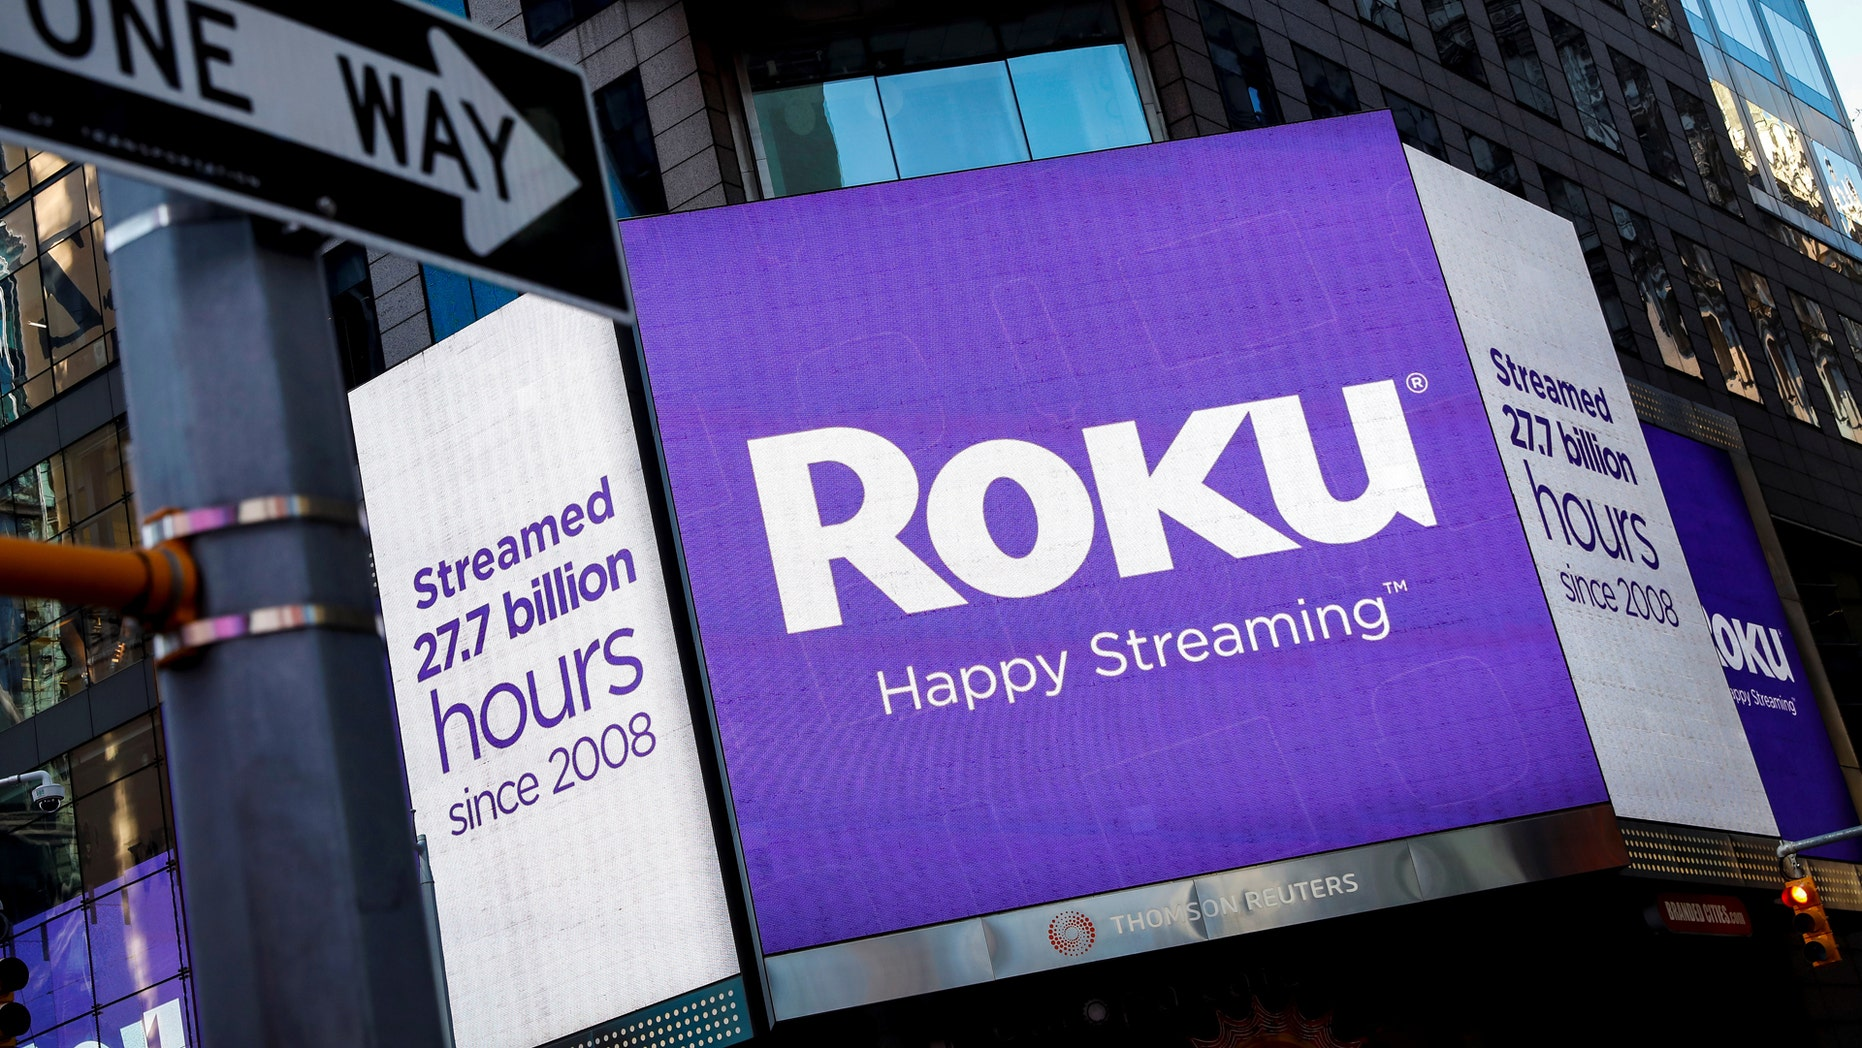 Roku Takes Page From Amazon, Hulu With Premium Subscriptions